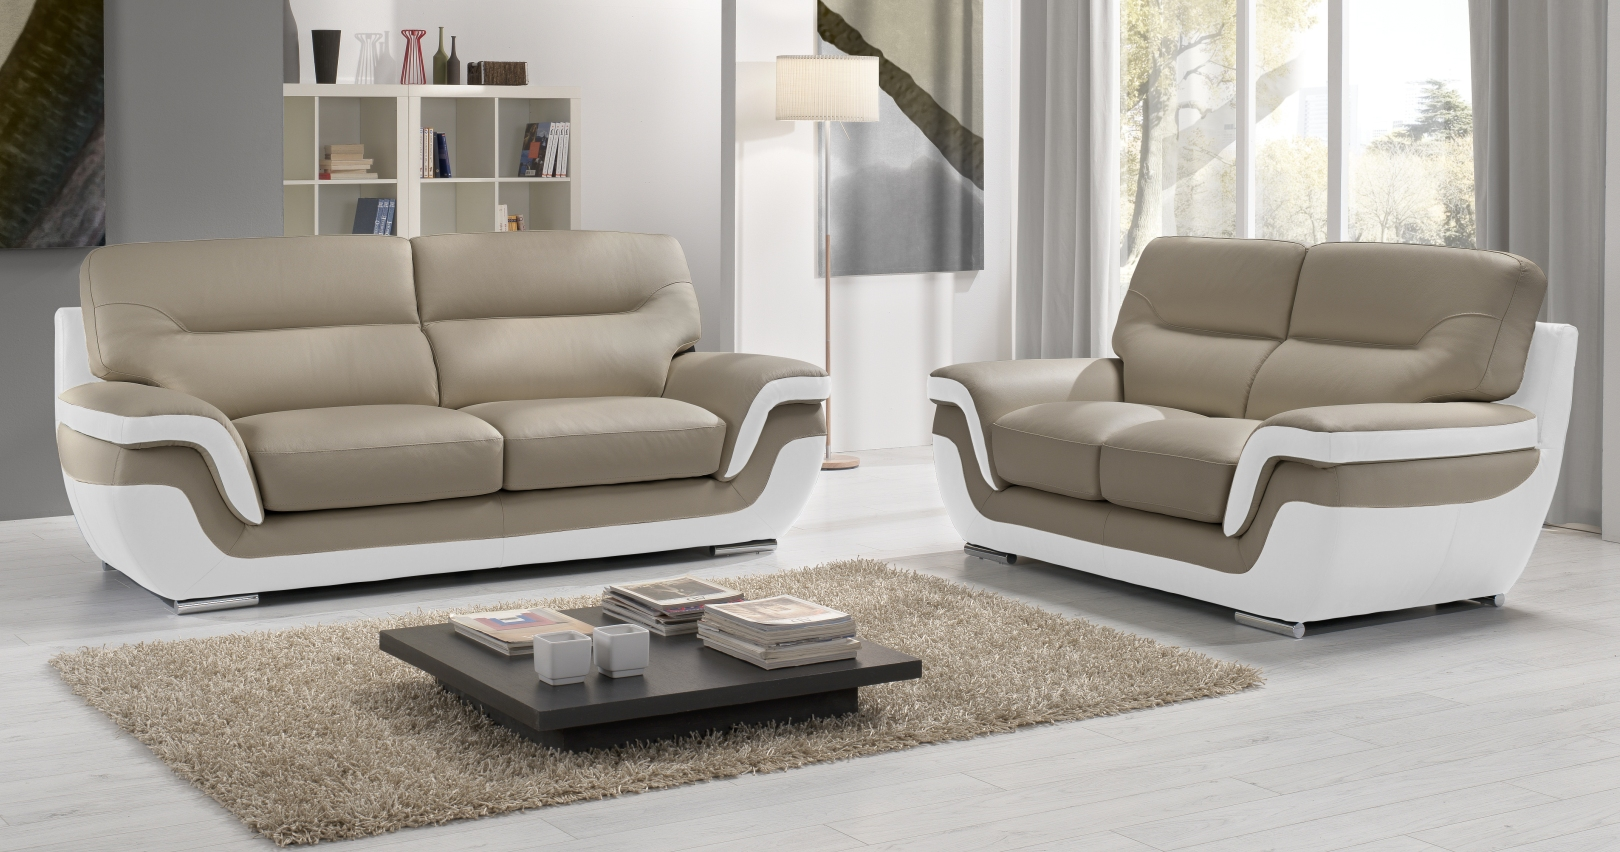 canapé RODRIGUE Salon 3 2 Cuir Design Italienpersonnalisable sur